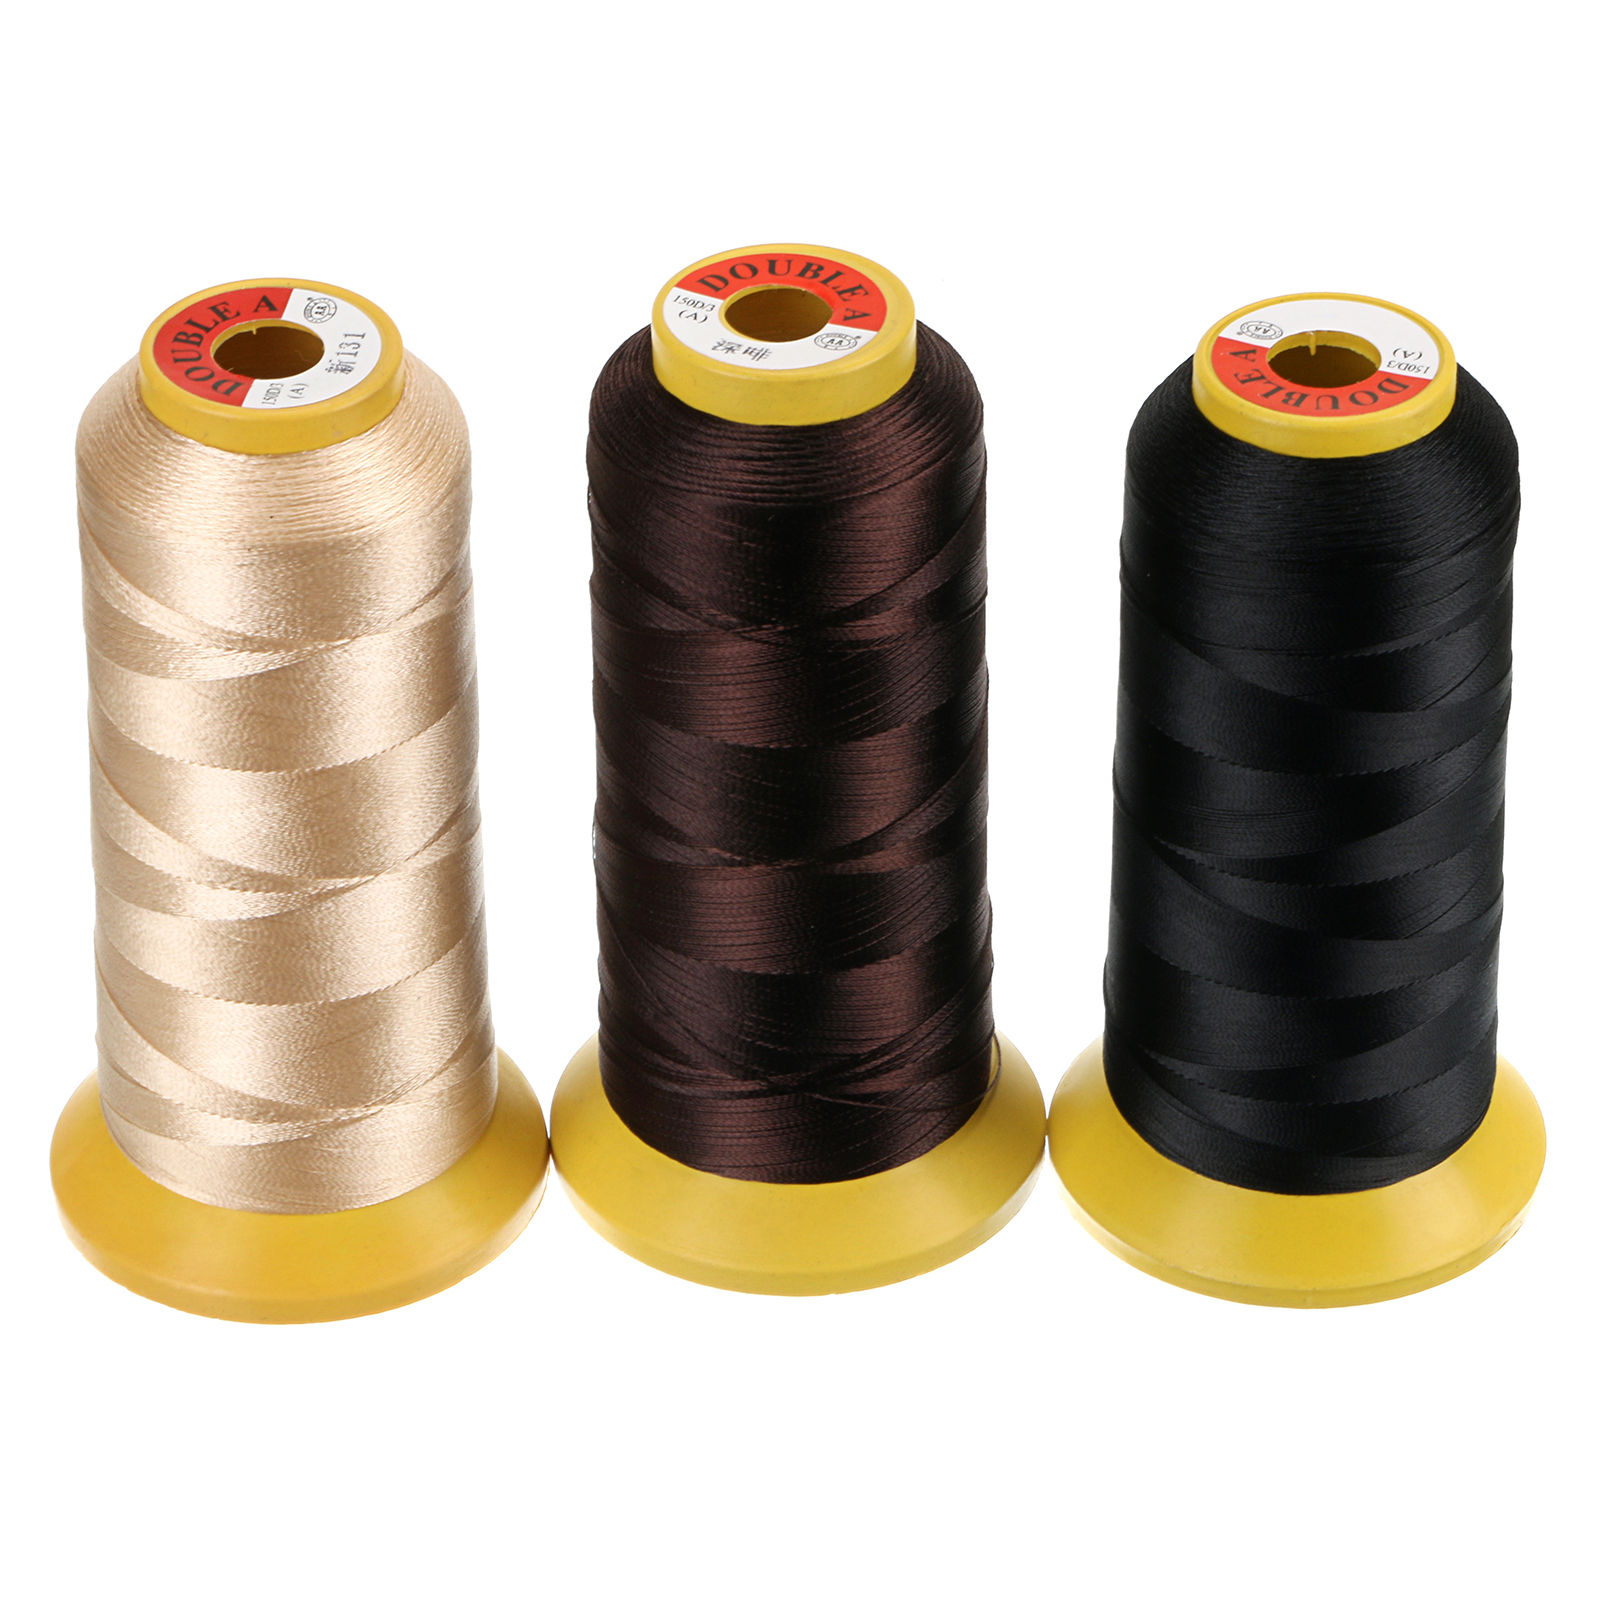 Girlis luxury hair extensions weaving thread hand tied weft weaving thread pmusecretfo Gallery